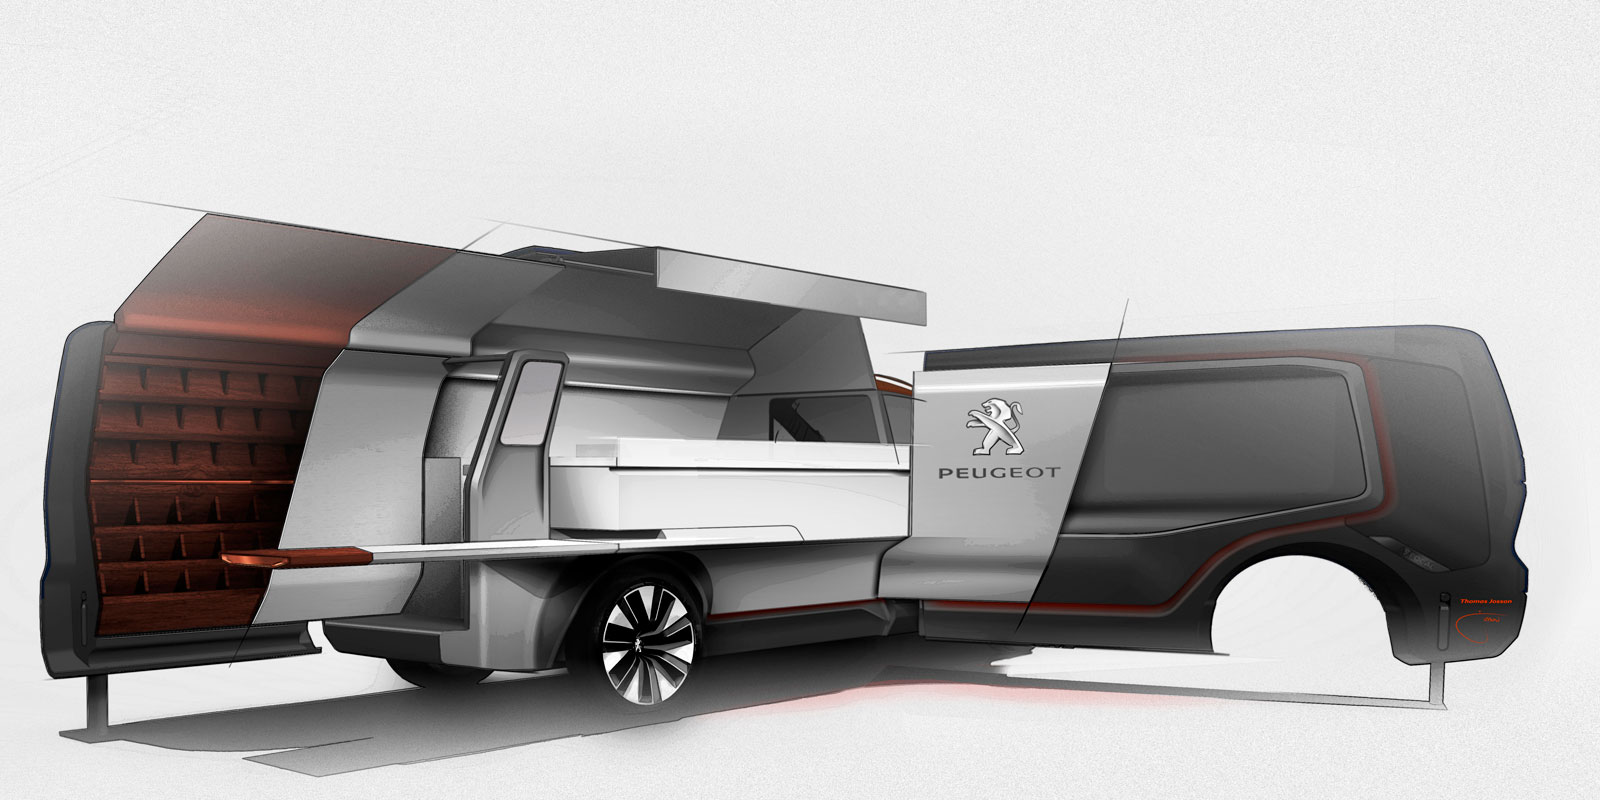 Peugeot Foodtruck Concept Design Sketch Render Car Body